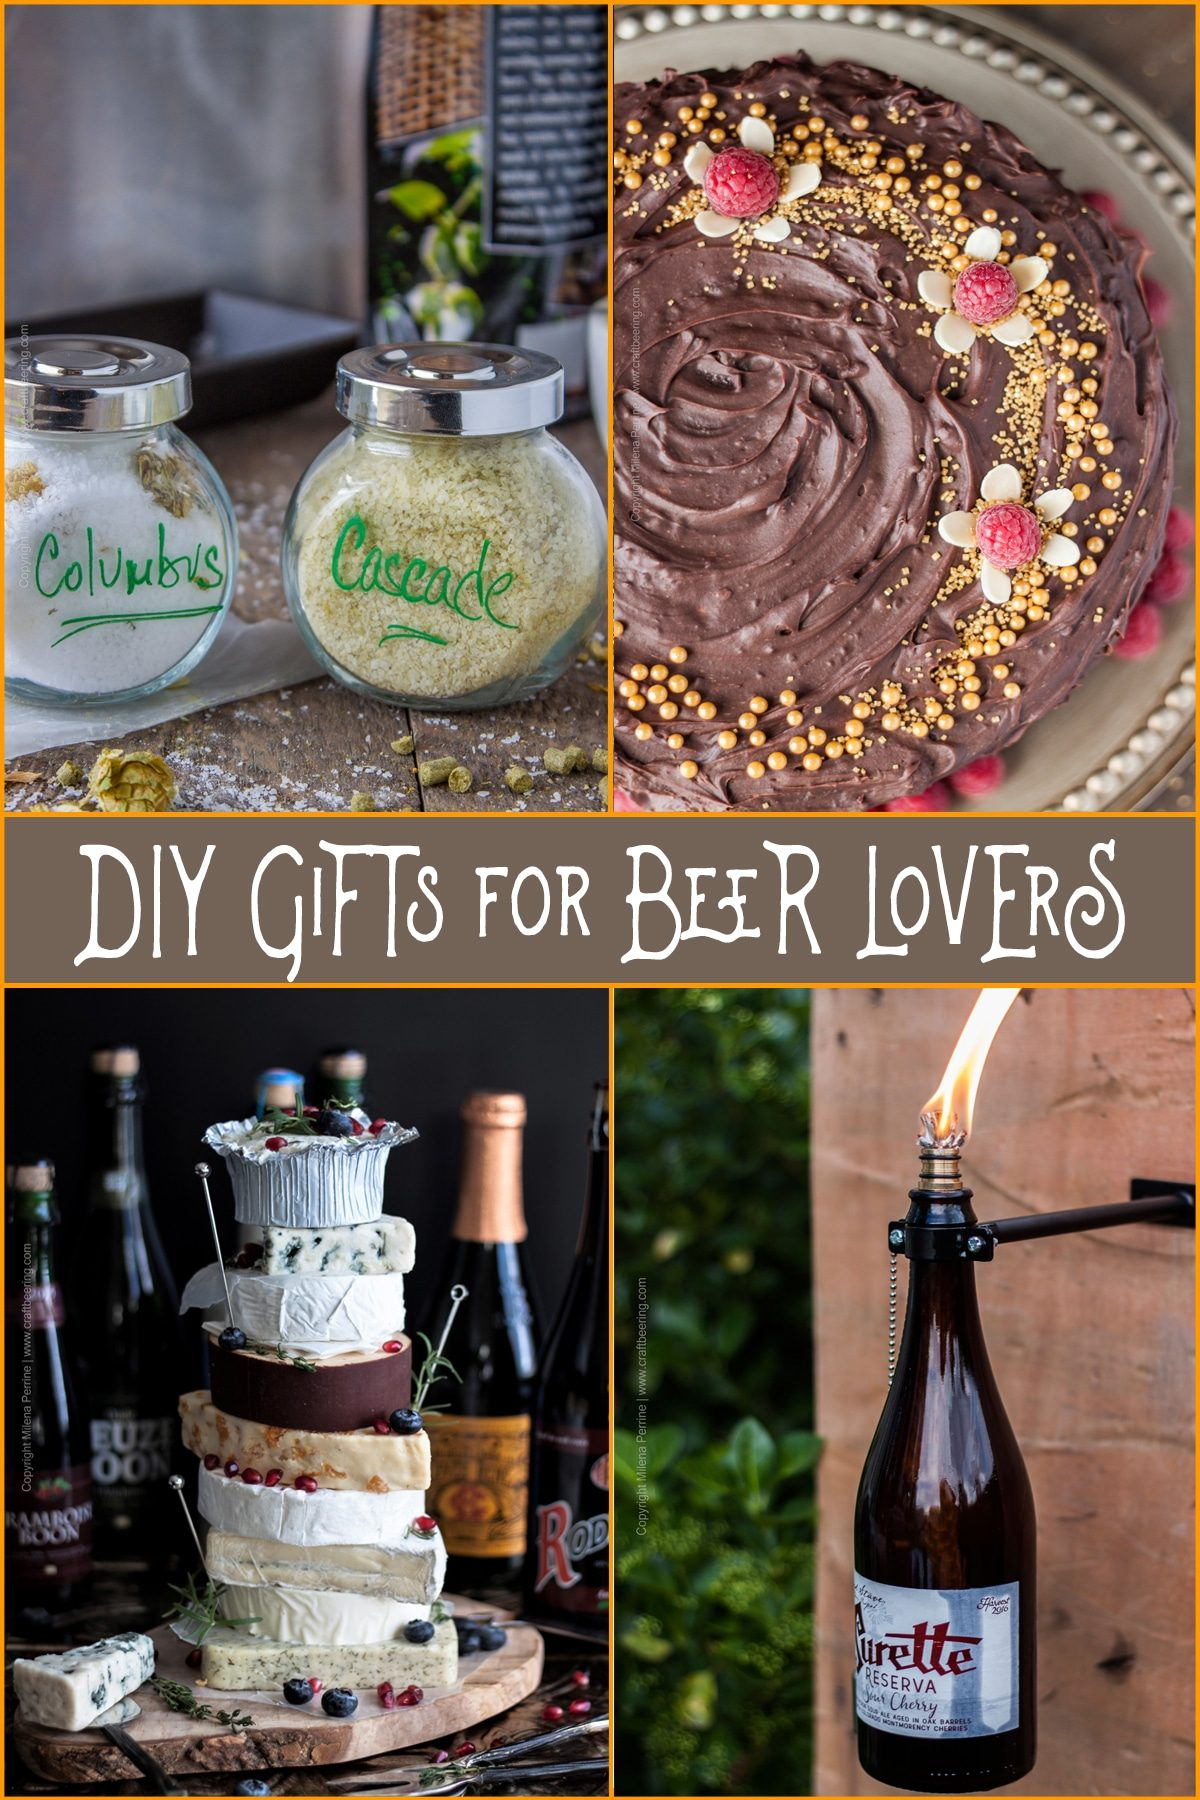 DIY Gifts for Beer Lovers | Beer themed gifts you can make that they will love! Beer cake, beer bottle tiki torch, beer and cheese pairing, hops salt PLUS MORE! #beergift #beergiftidea #fathersdaygift #birthdaygift